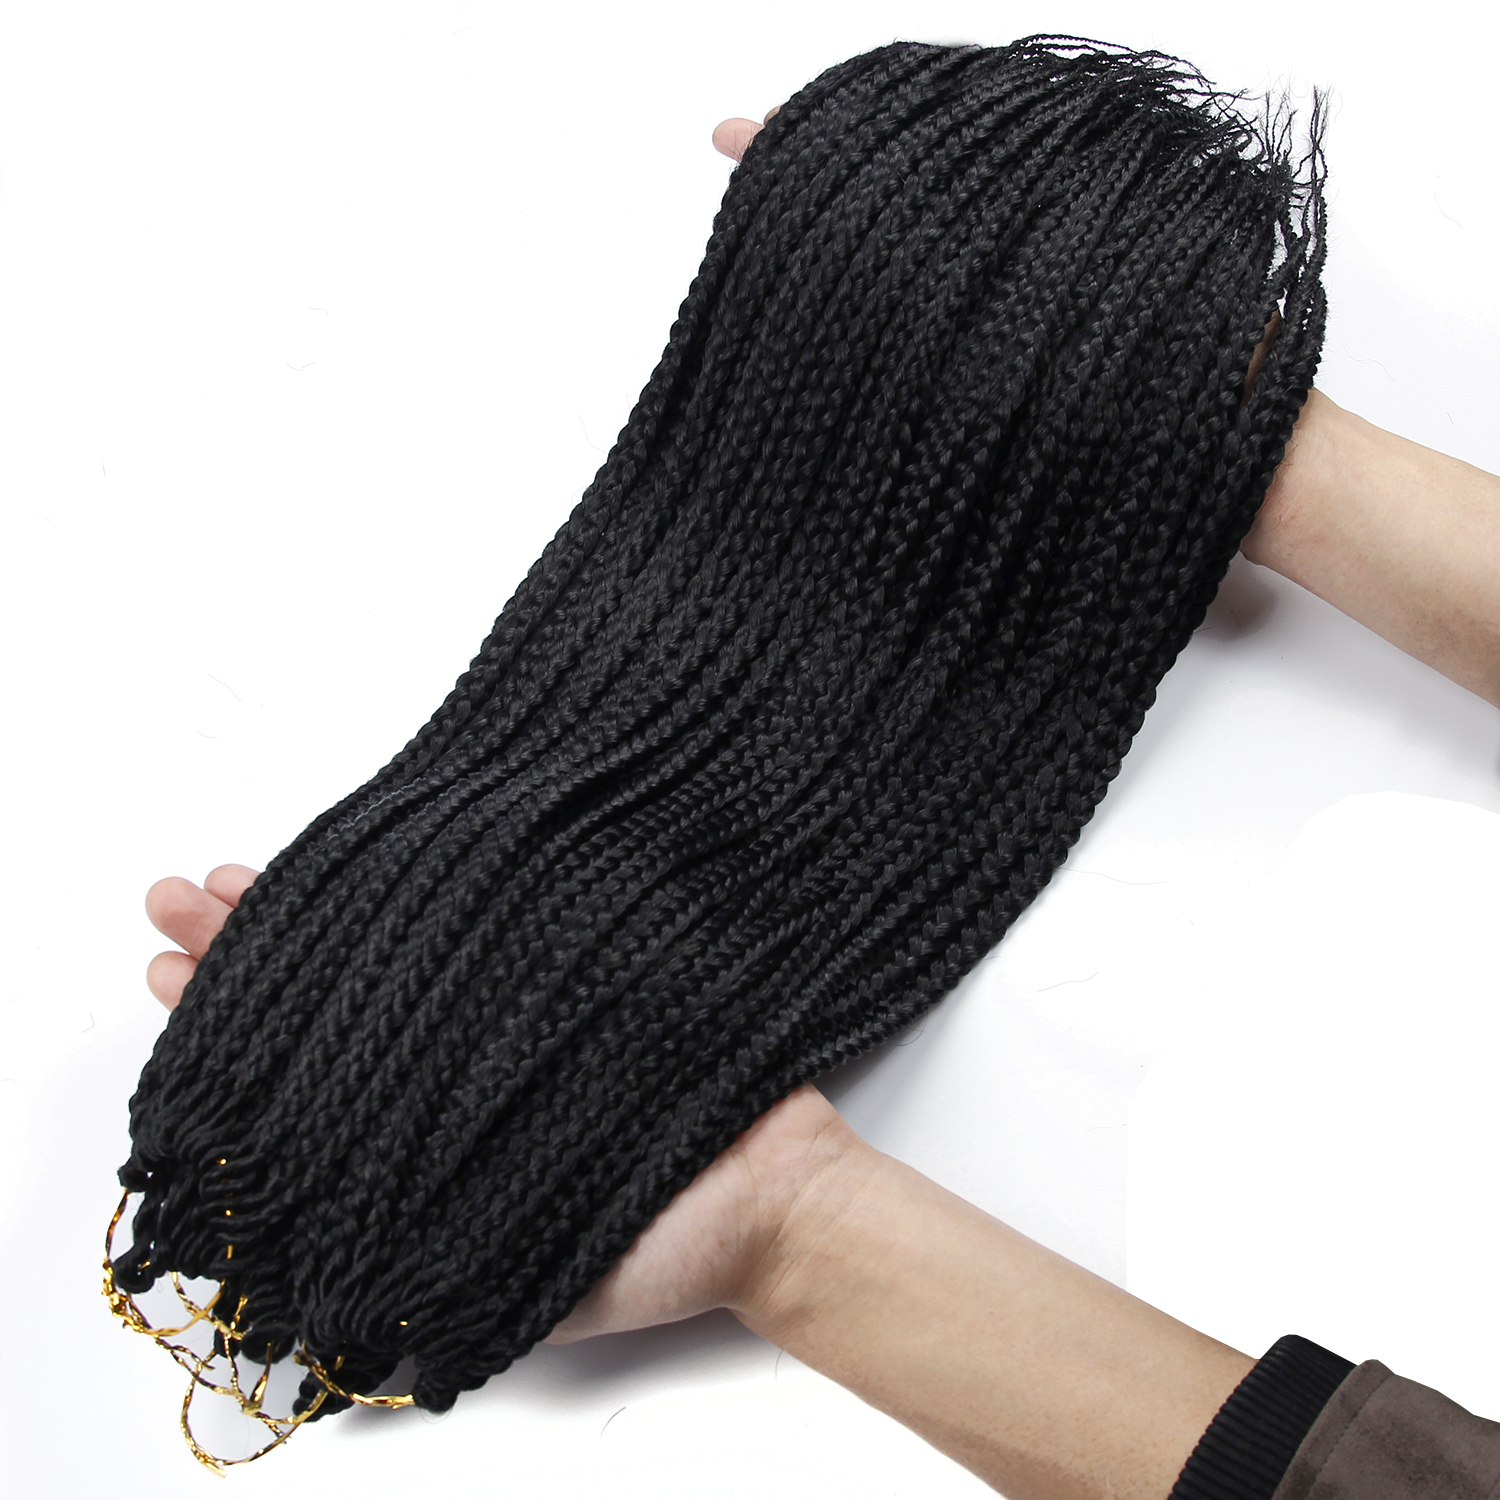 Box Braids Ombre Hair Extension Synthetic 22 Inch Crochet Braids Free Shipping Crochet Hair